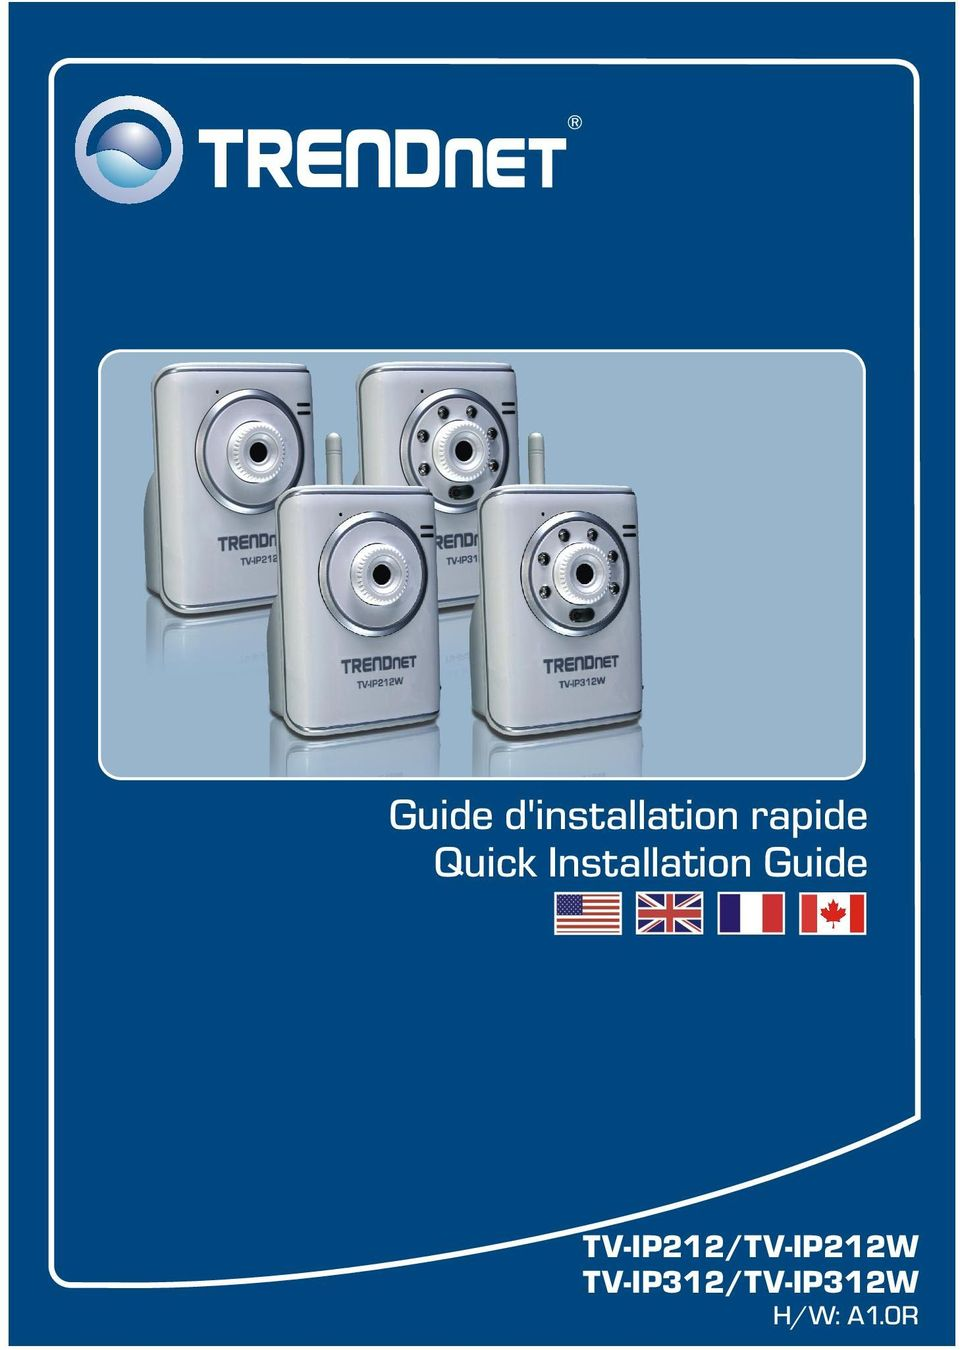 Guide TV-IP212/TV-IP212W